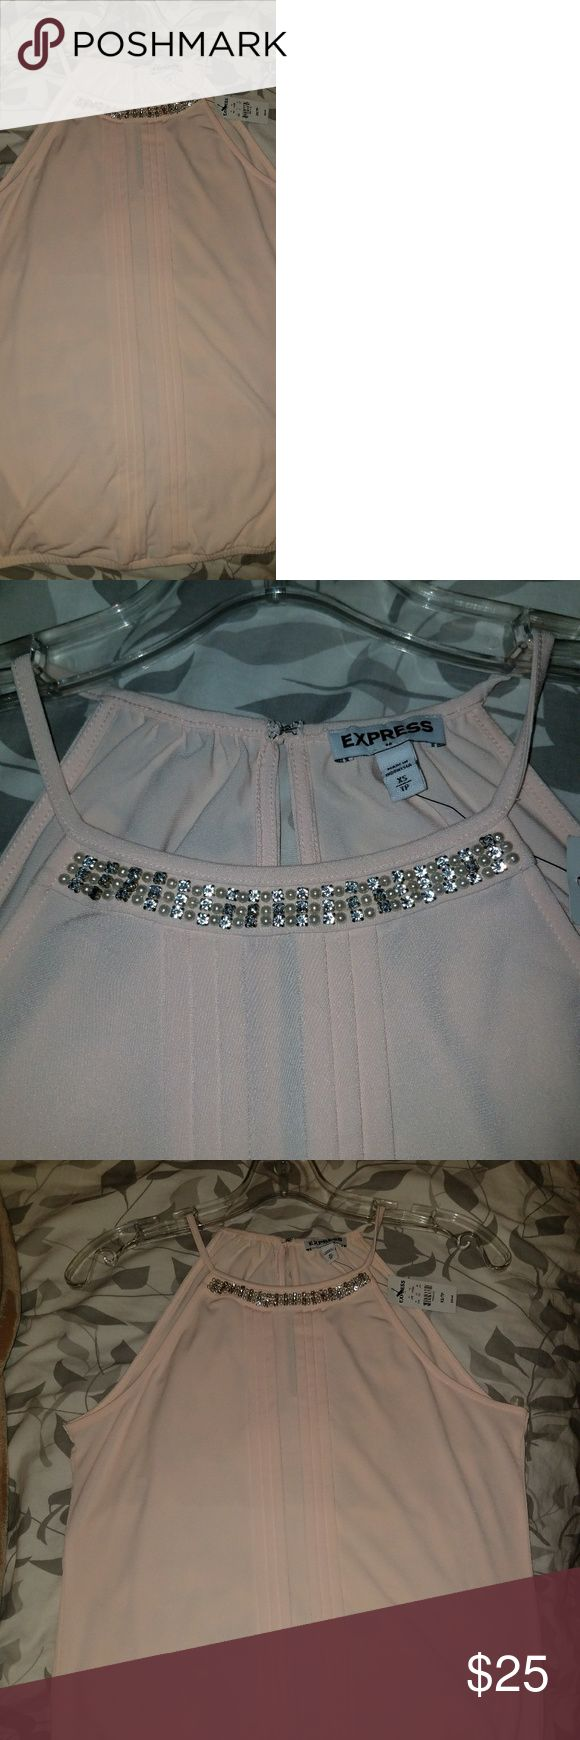 Blush (light pink) halter top This is brand new.  Never worn.  Tag is still on it.  Size XS. Purchased from Express Clothing store. Top is jeweled + tiny pearls.  Feel free to contact me if you have any questions. Express Tops